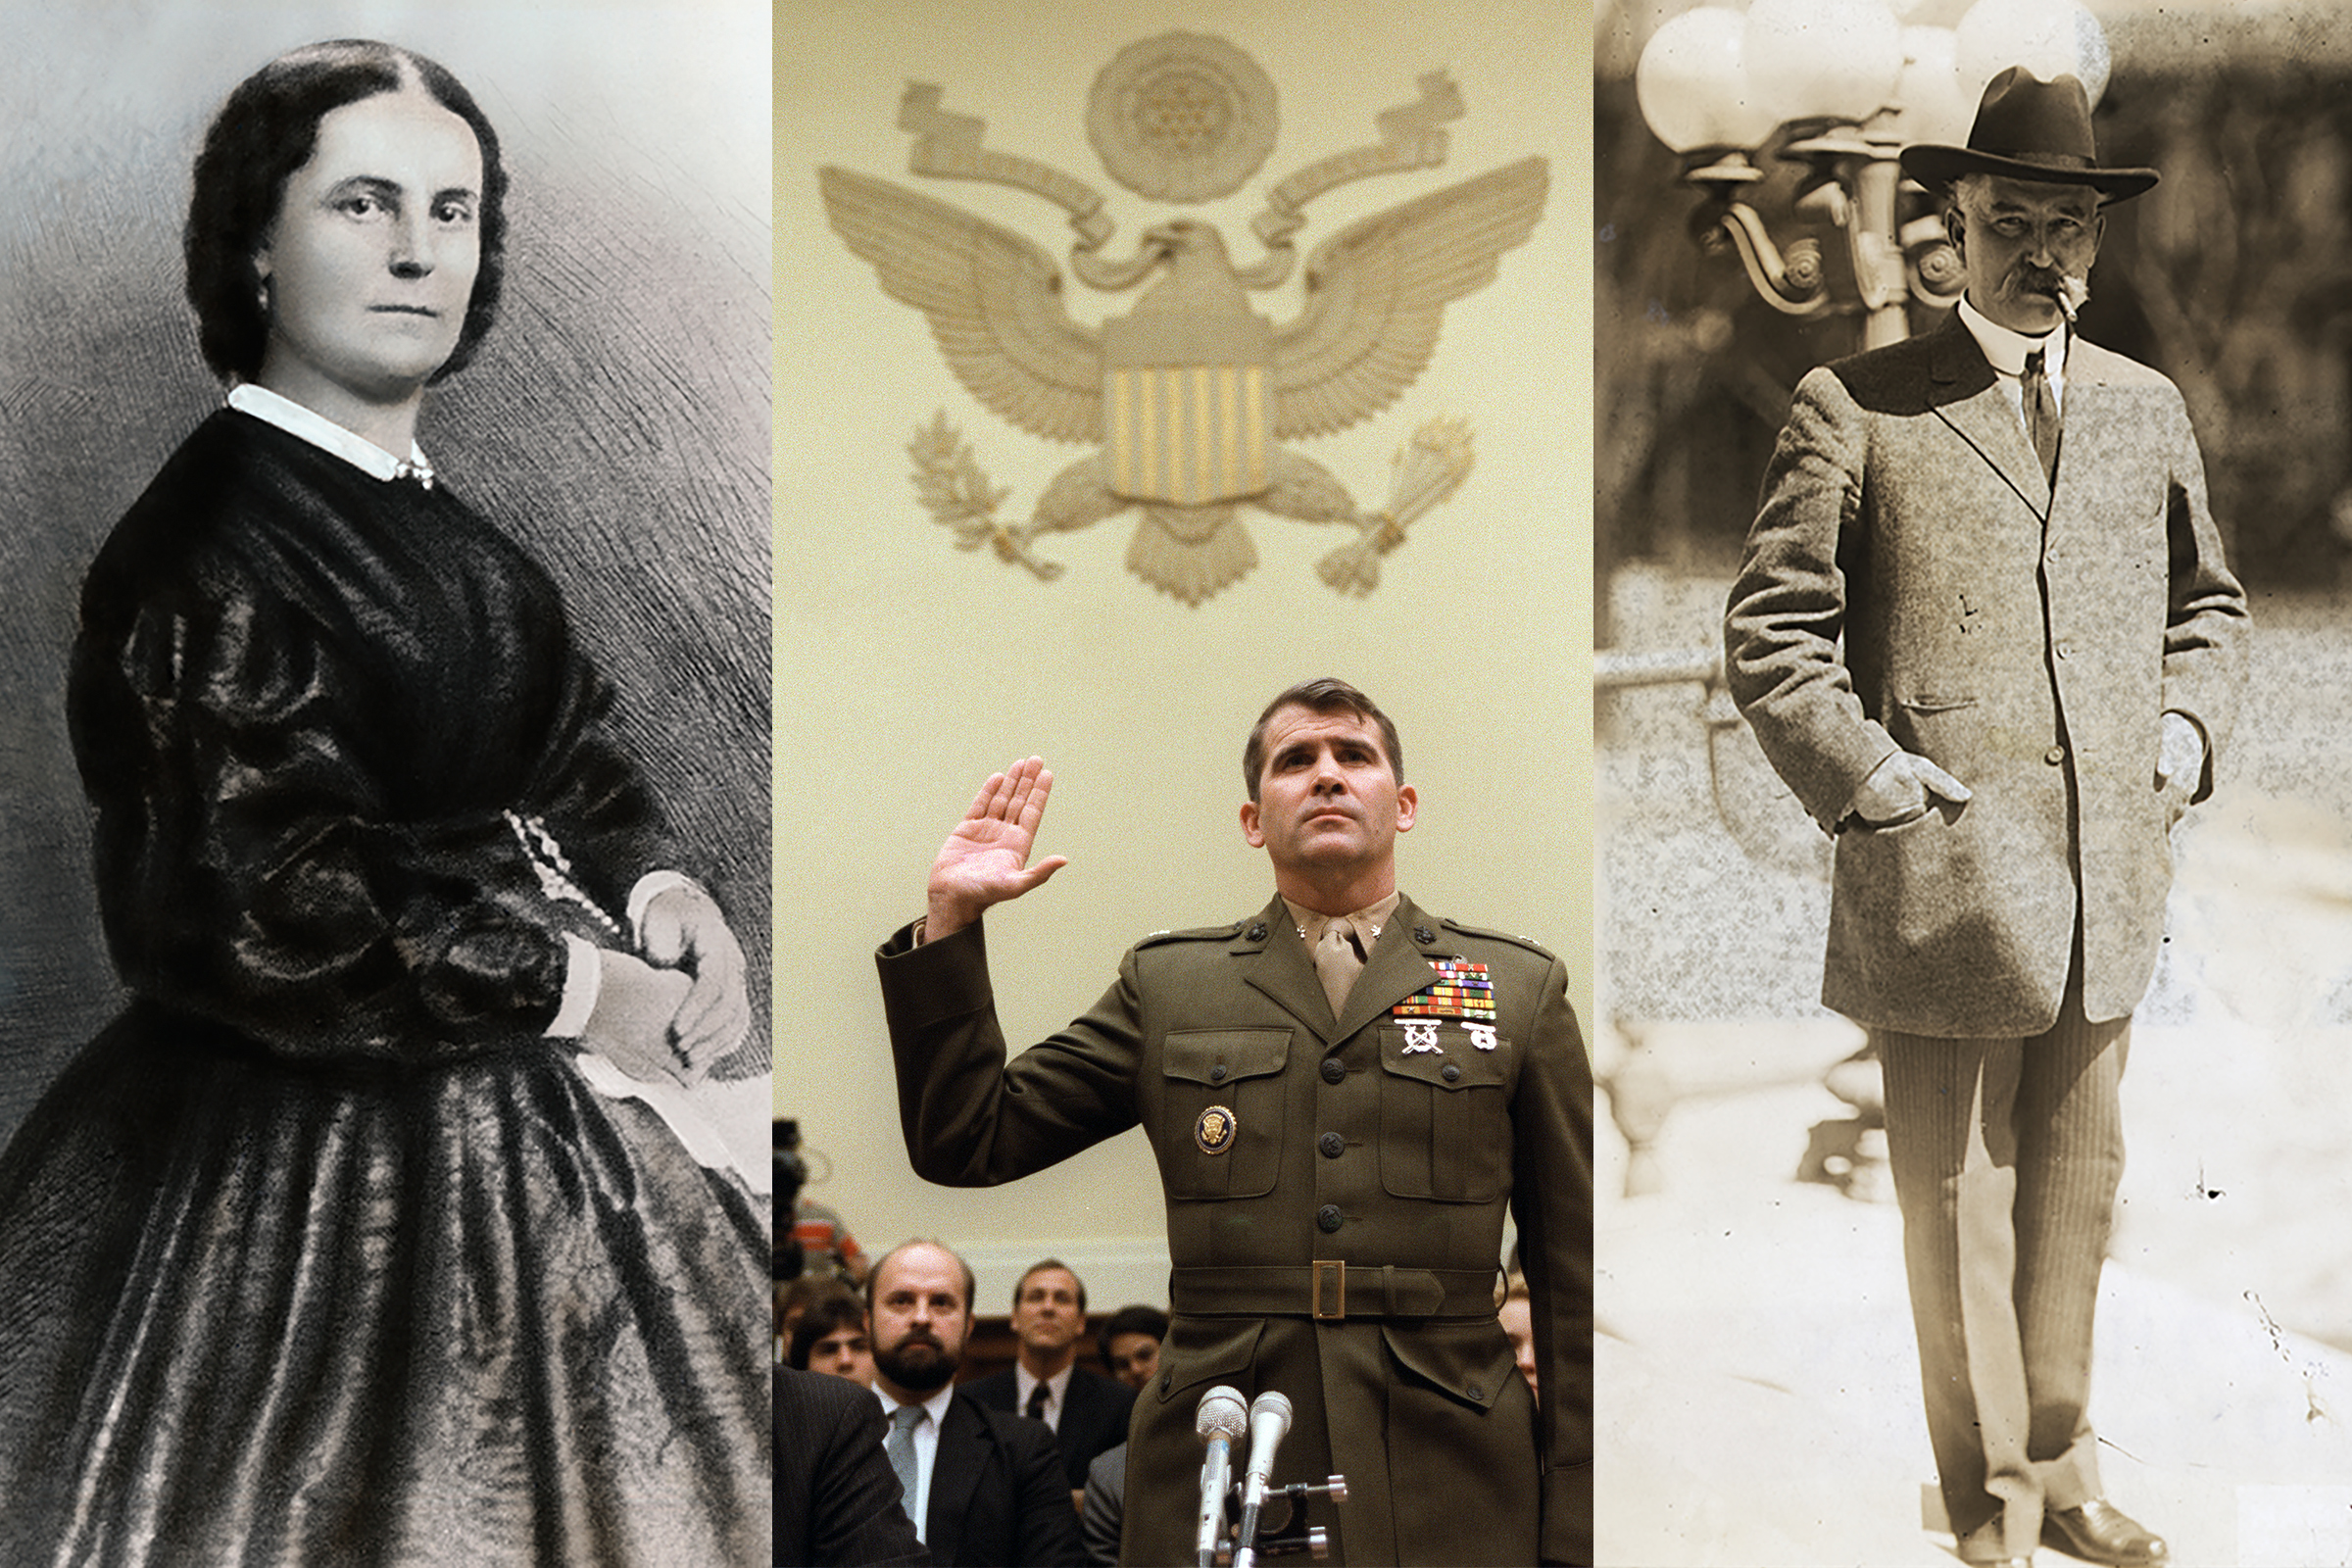 L to R: Illustration of Peggy Eaton, undated;  Lieutenant-Colonel Oliver North is sworn in on Dec. 9, 1986, before the House Foreign Affairs Committee hearing in Washington, D.C., on arms sales to Iran; Albert B. Fall, Secretary of Interior in Harding administration, destroyed politically by the Teapot Dome scandal, c. 1910s